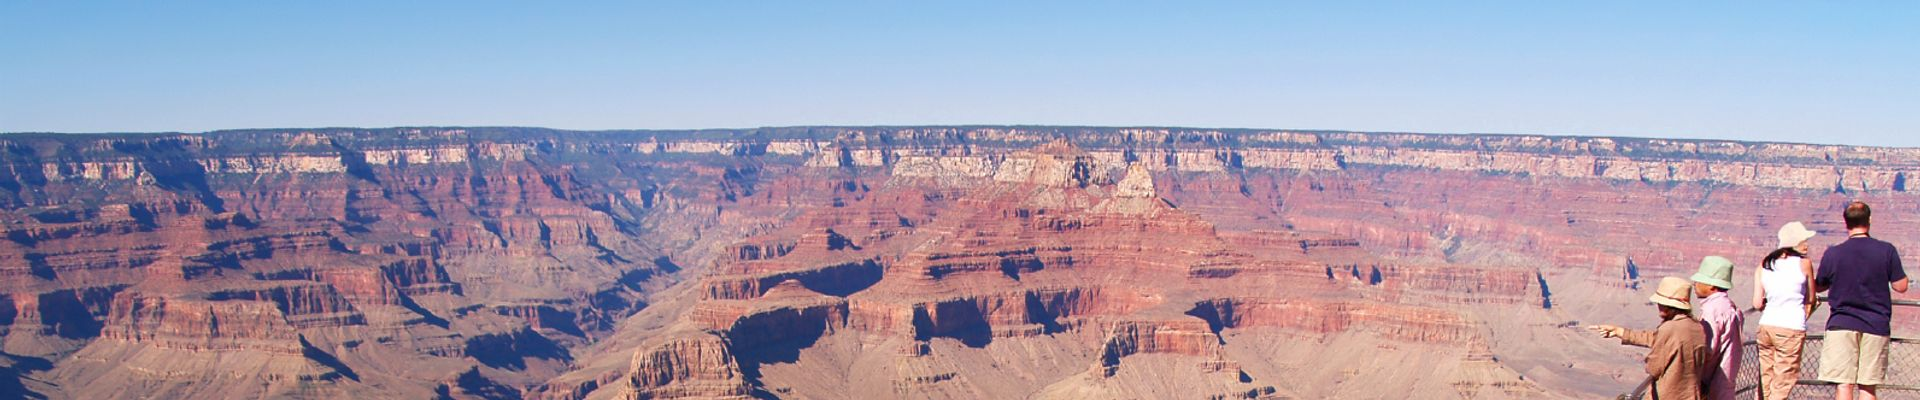 A group of sightseers stand at the edge of the Grand Canyon National Park.